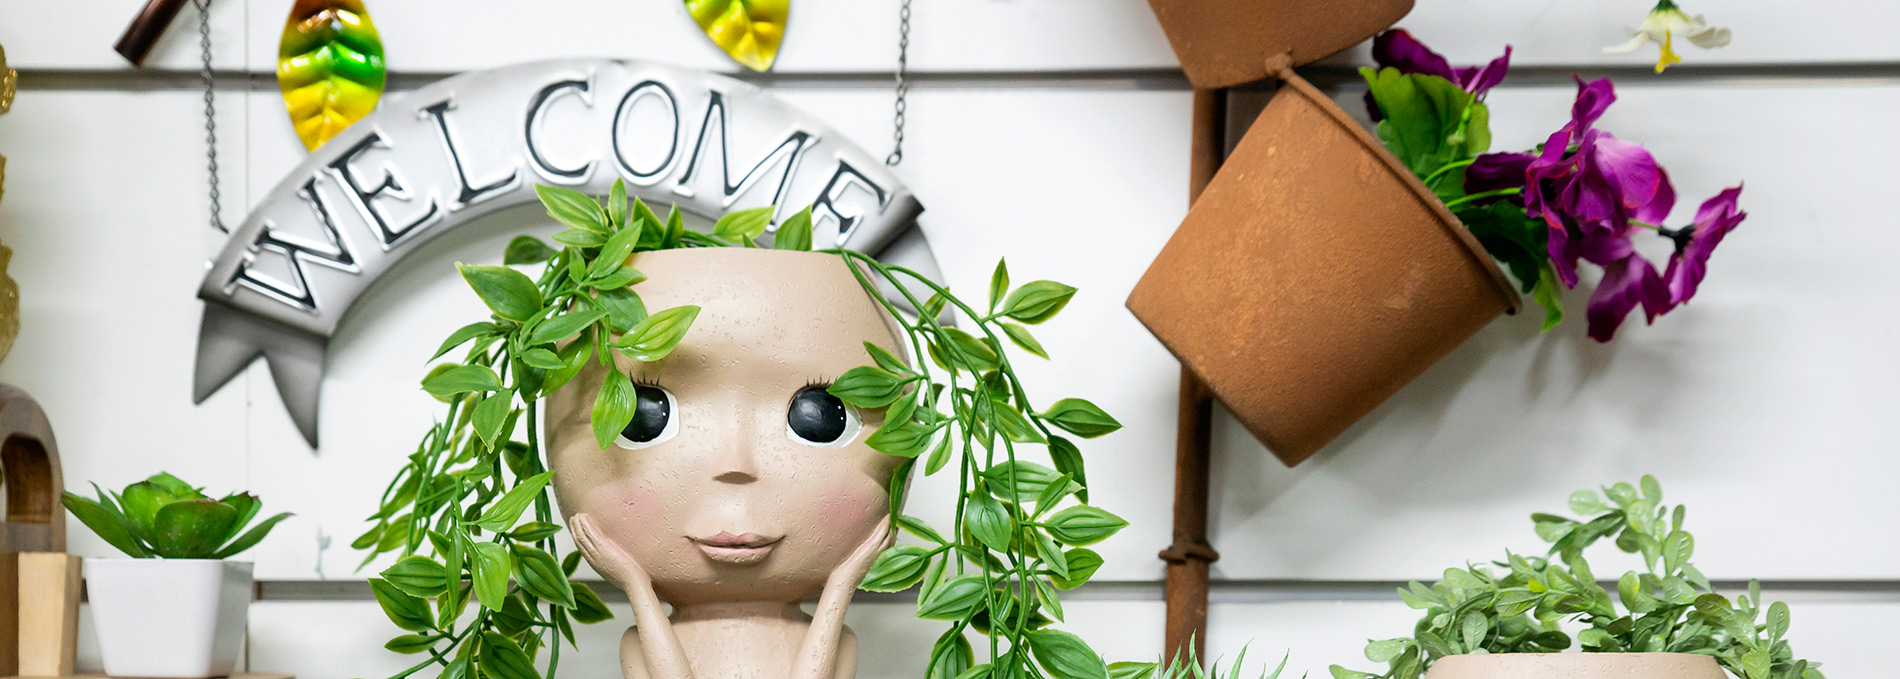 About Gifted Gumleaf Gifts & Souvenirs